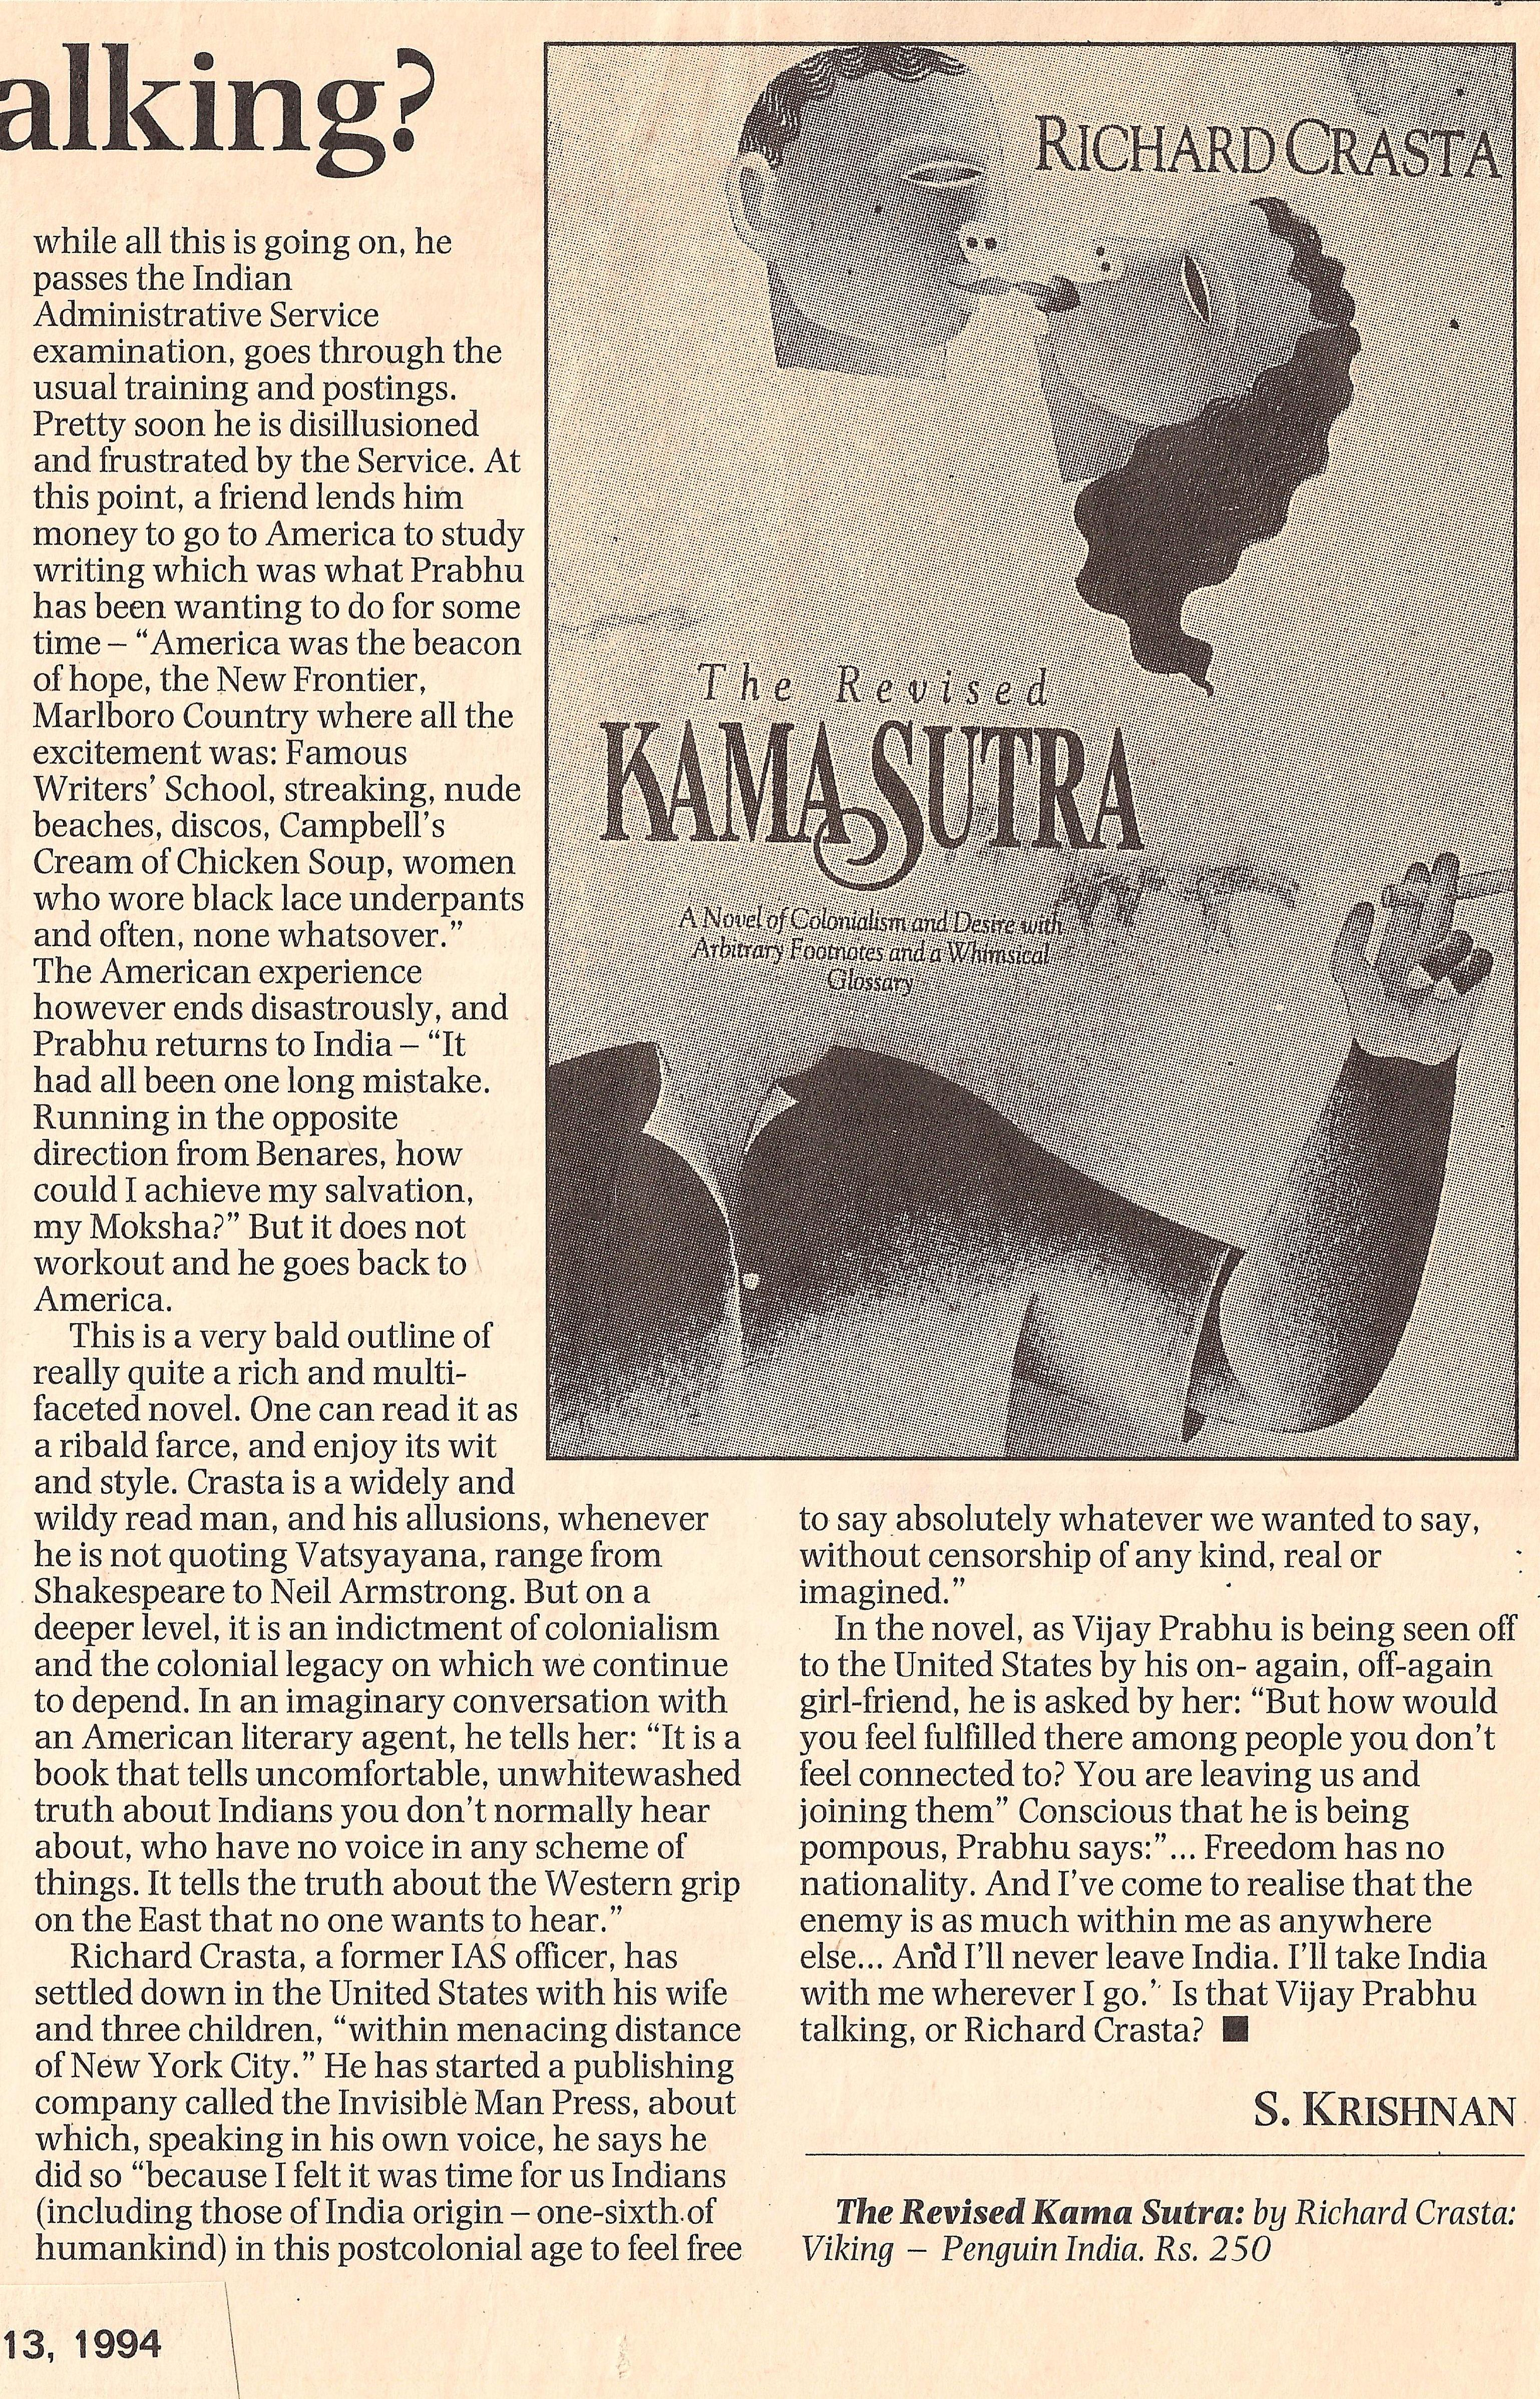 Part 2 of The Hindu Review of The Revised Kama Sutra